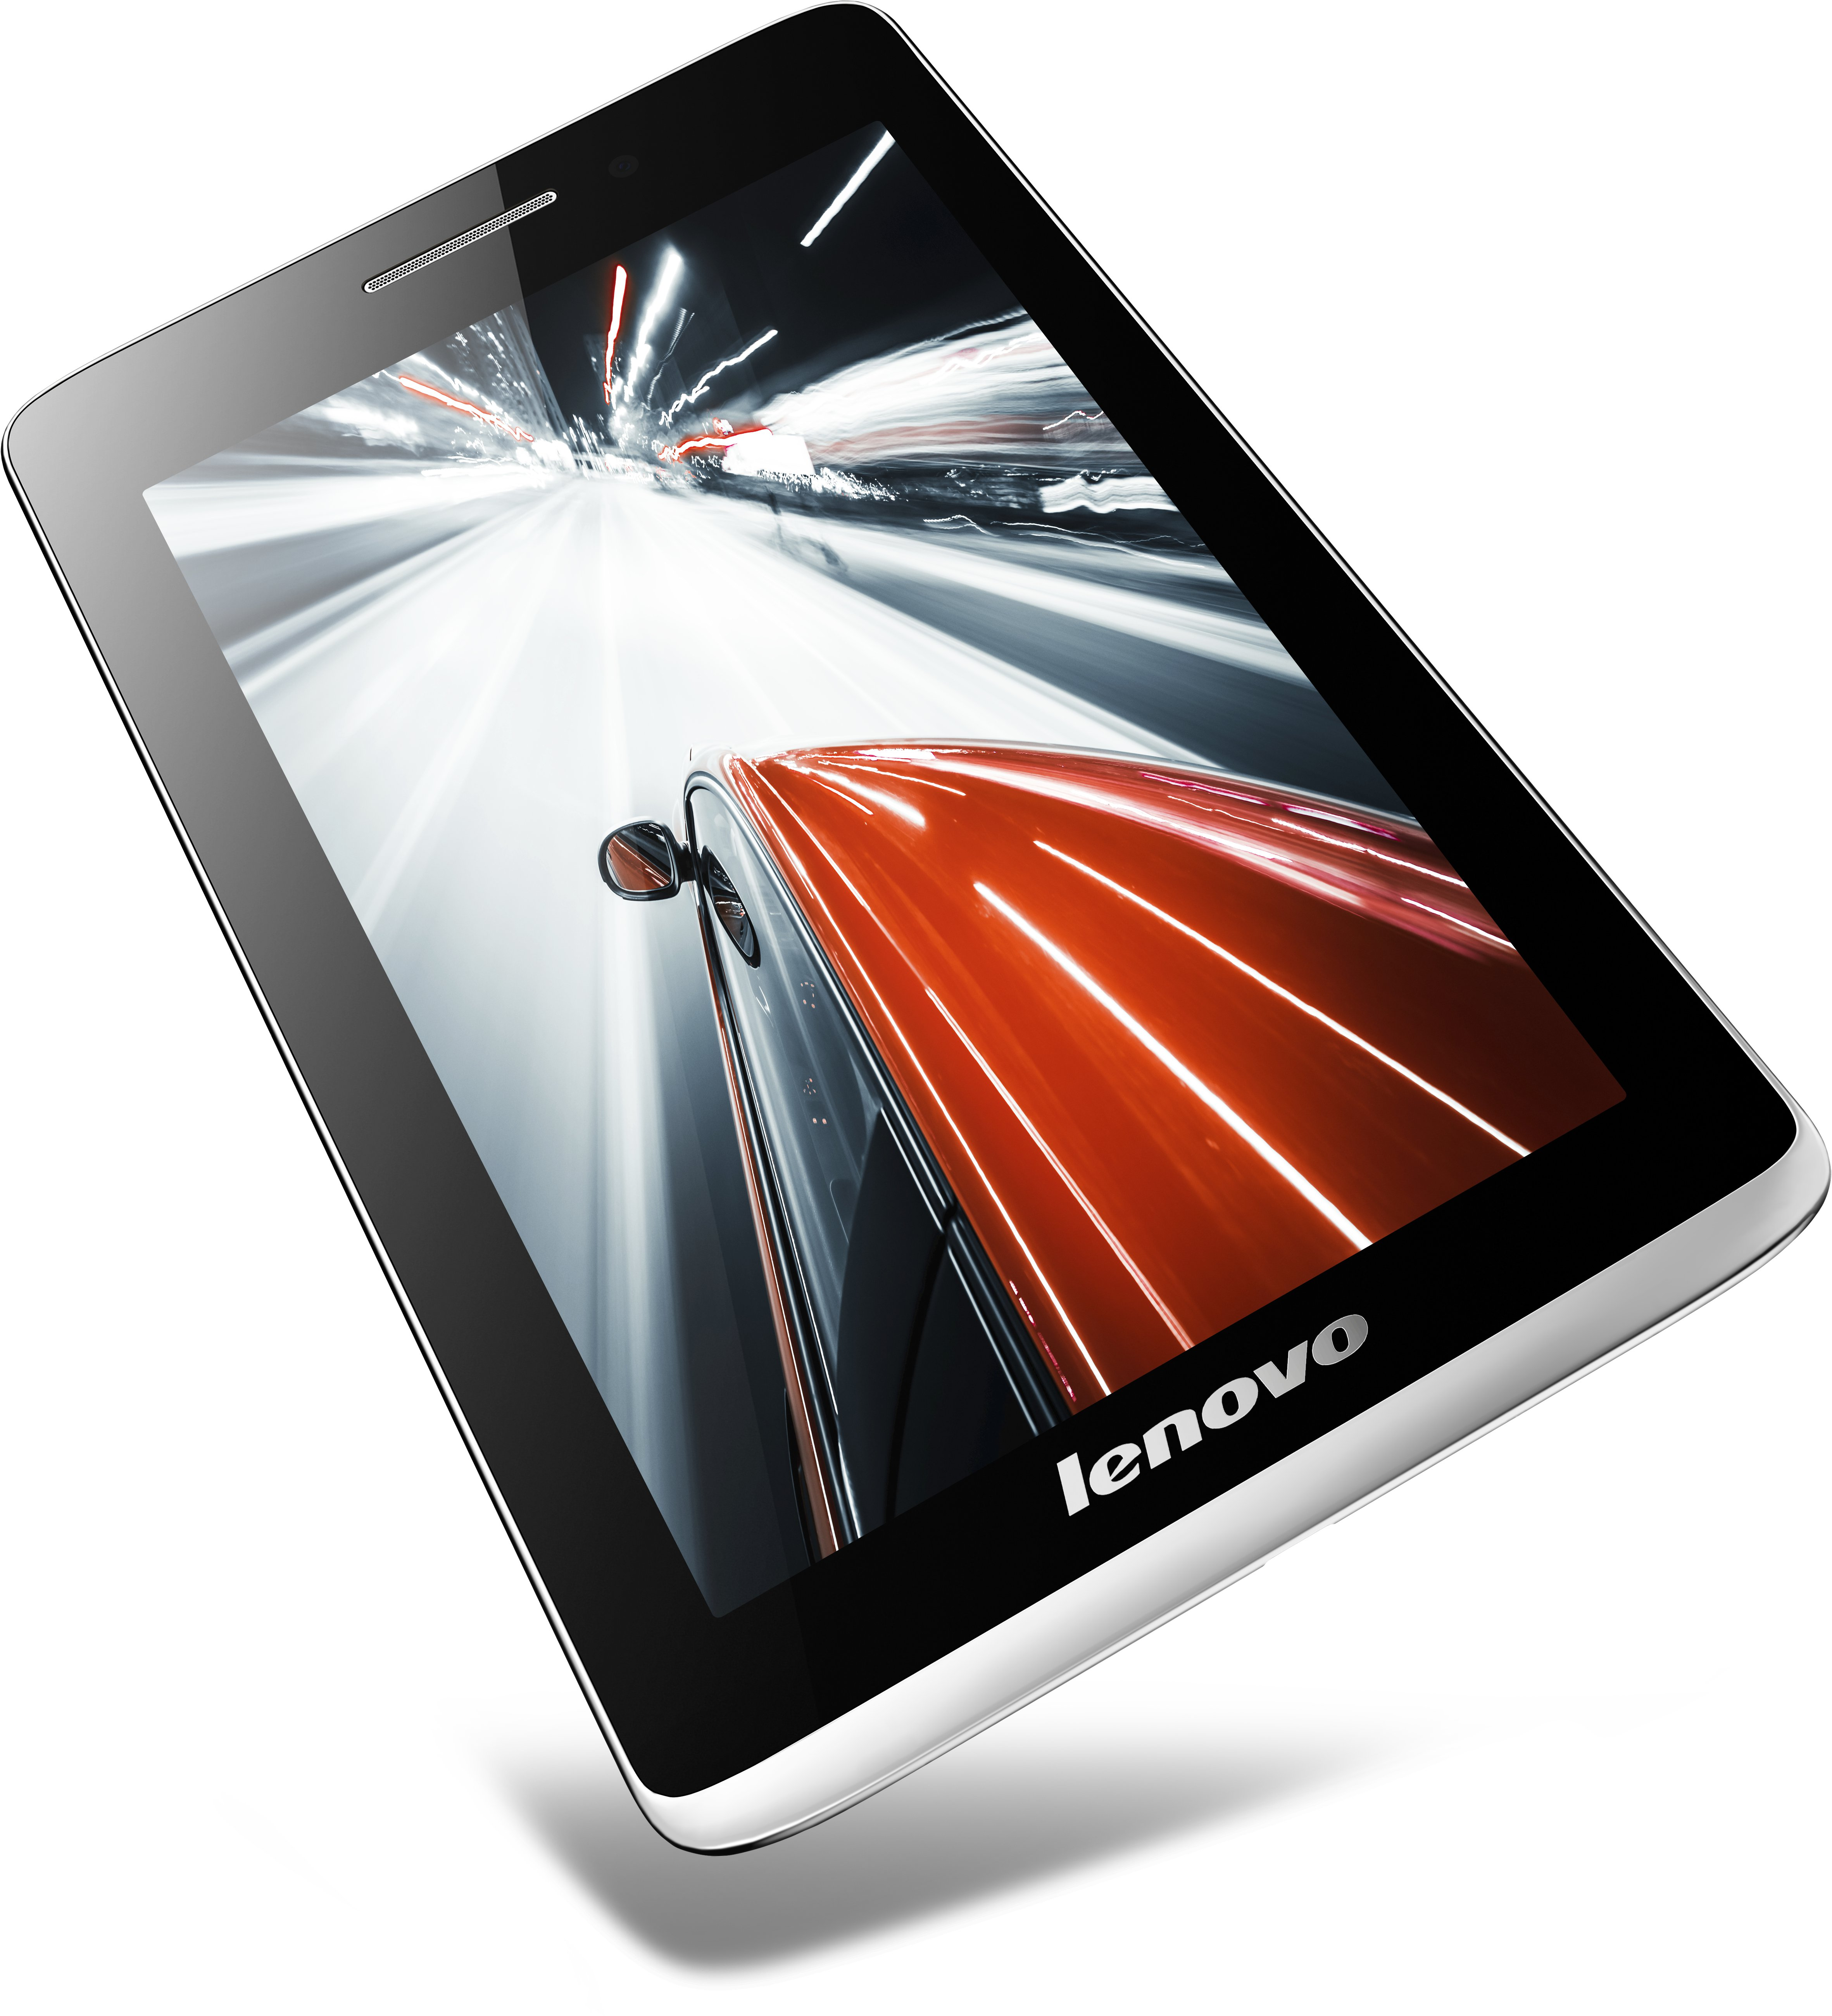 hot sale online b0408 515c9 Lenovo S5000 Tablet (7 inch, 16GB, Wi-Fi+3G+Voice Calling), Silver-Grey